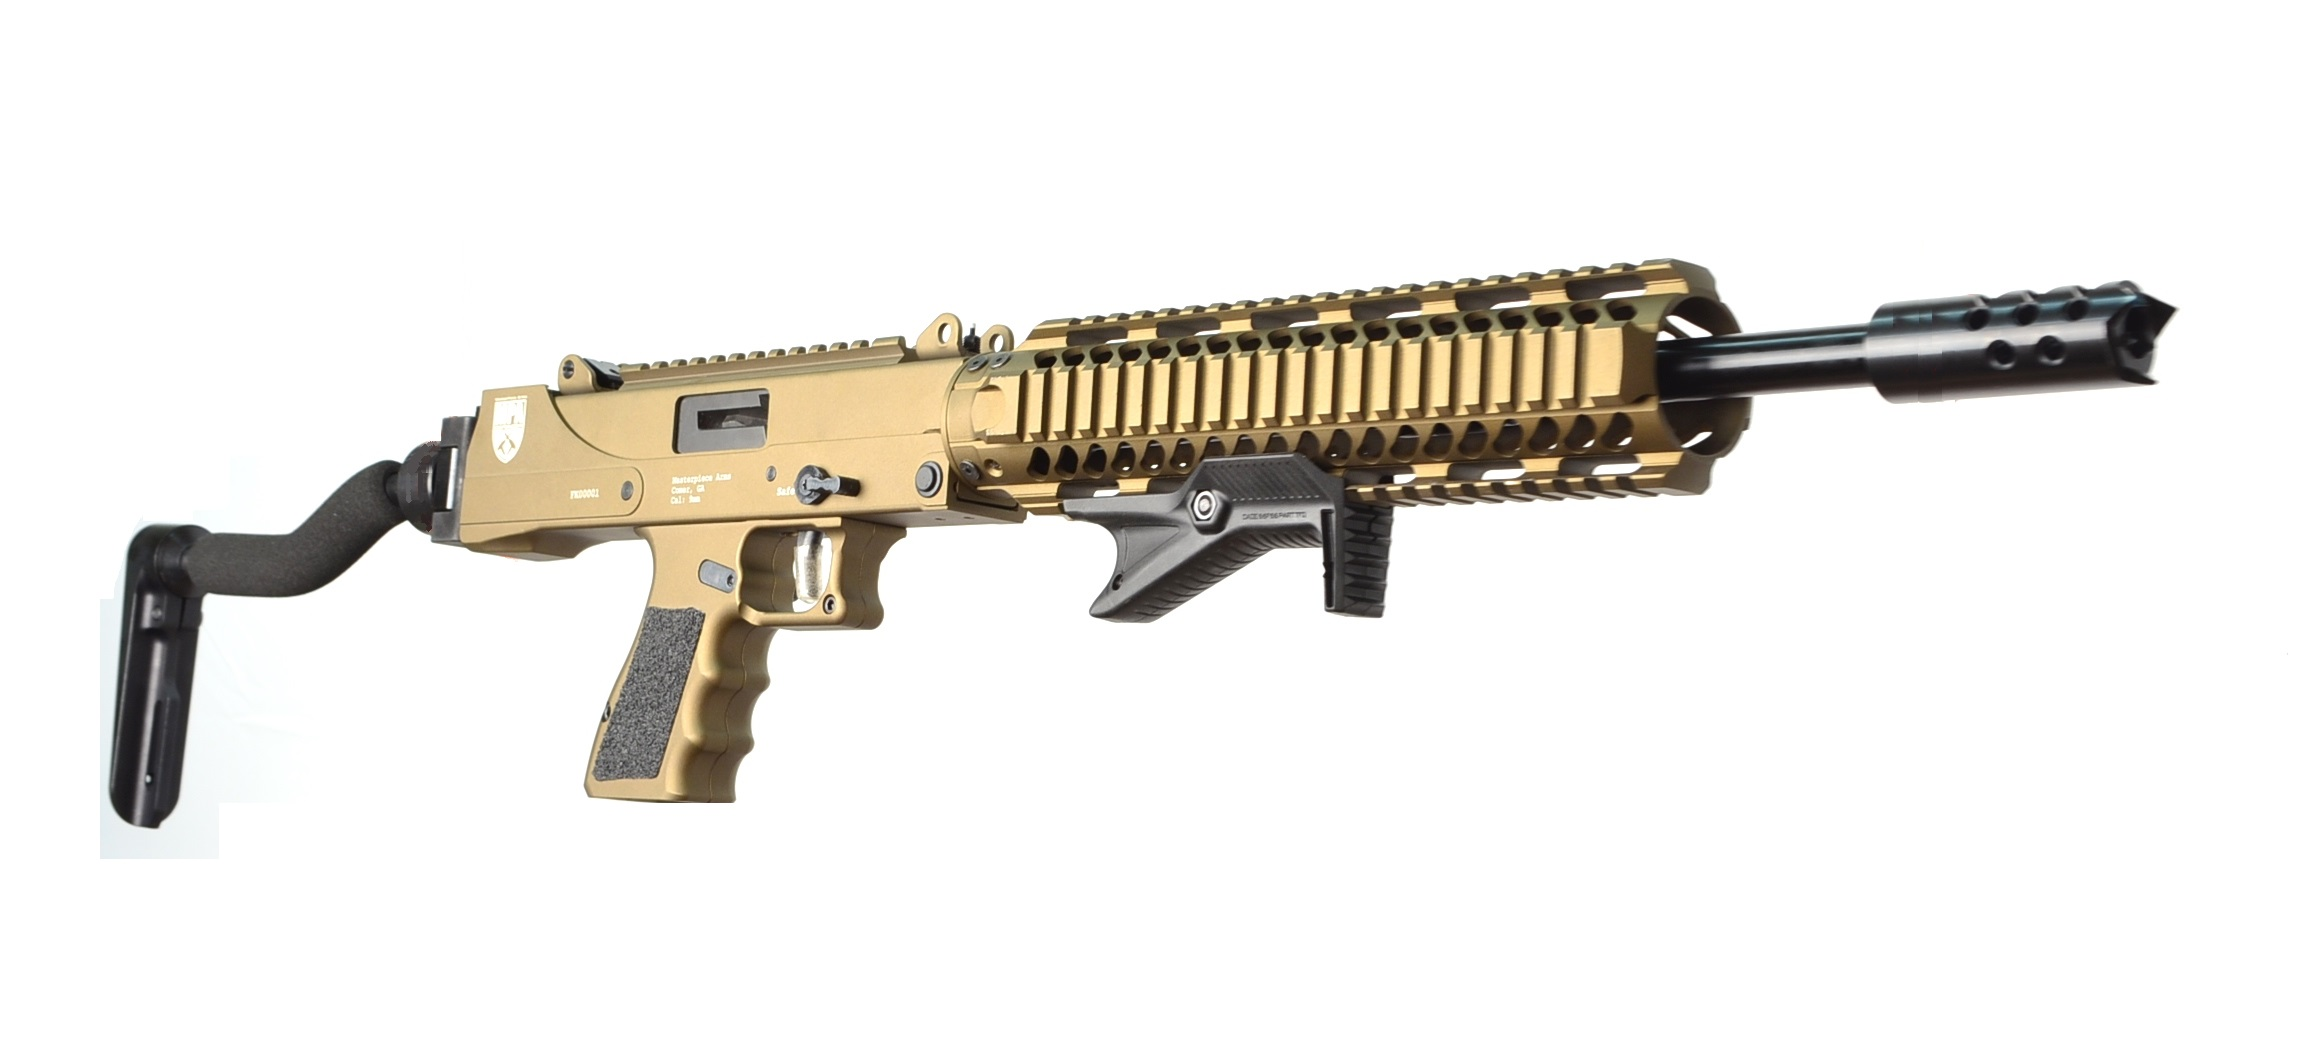 MPA20DMG 9mm Carbine - All Aluminum Lower - MasterPiece Arms